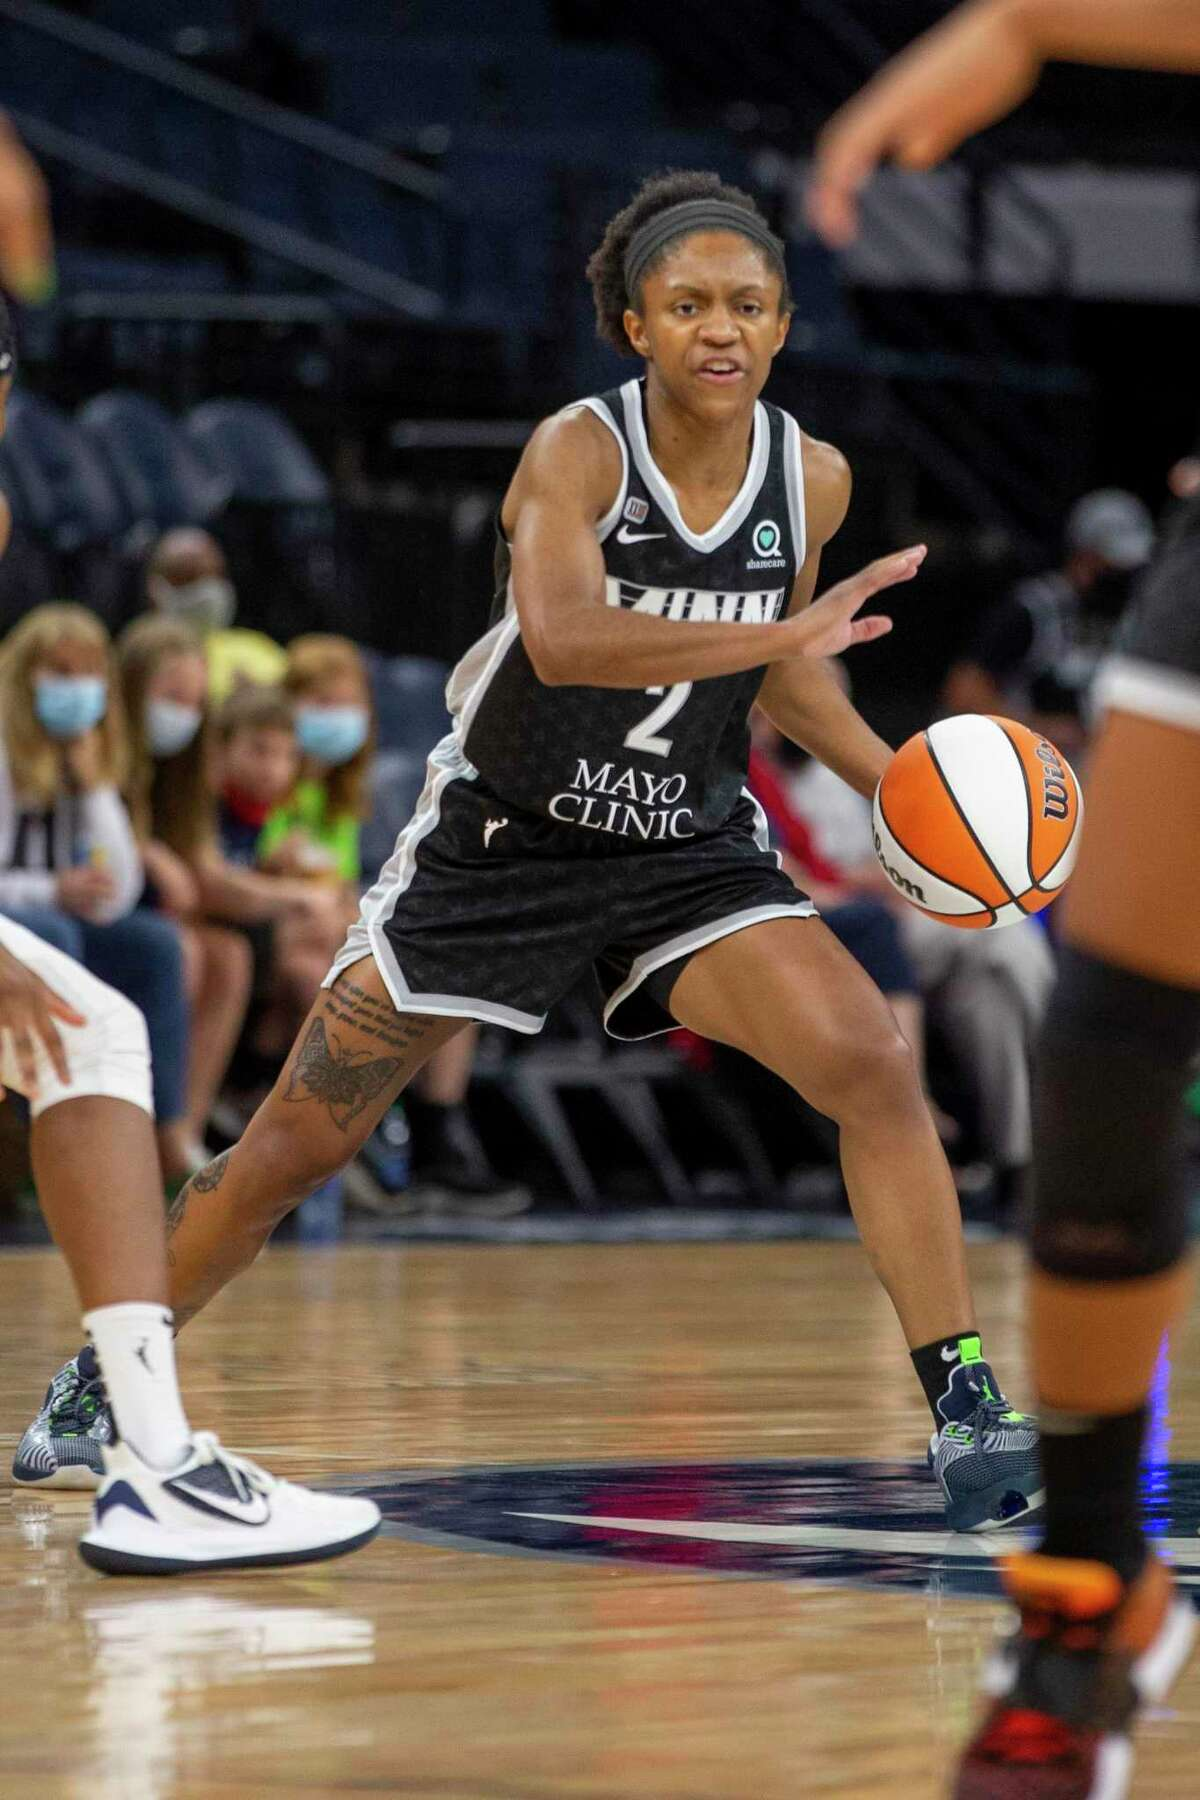 Minnesota Lynx guard Crystal Dangerfield (2) brings the ball up court against the Washington Mystics in the first quarter of a WNBA basketball game Saturday, Sept. 4, 2021, in Minneapolis. The Lynx won 93-75.